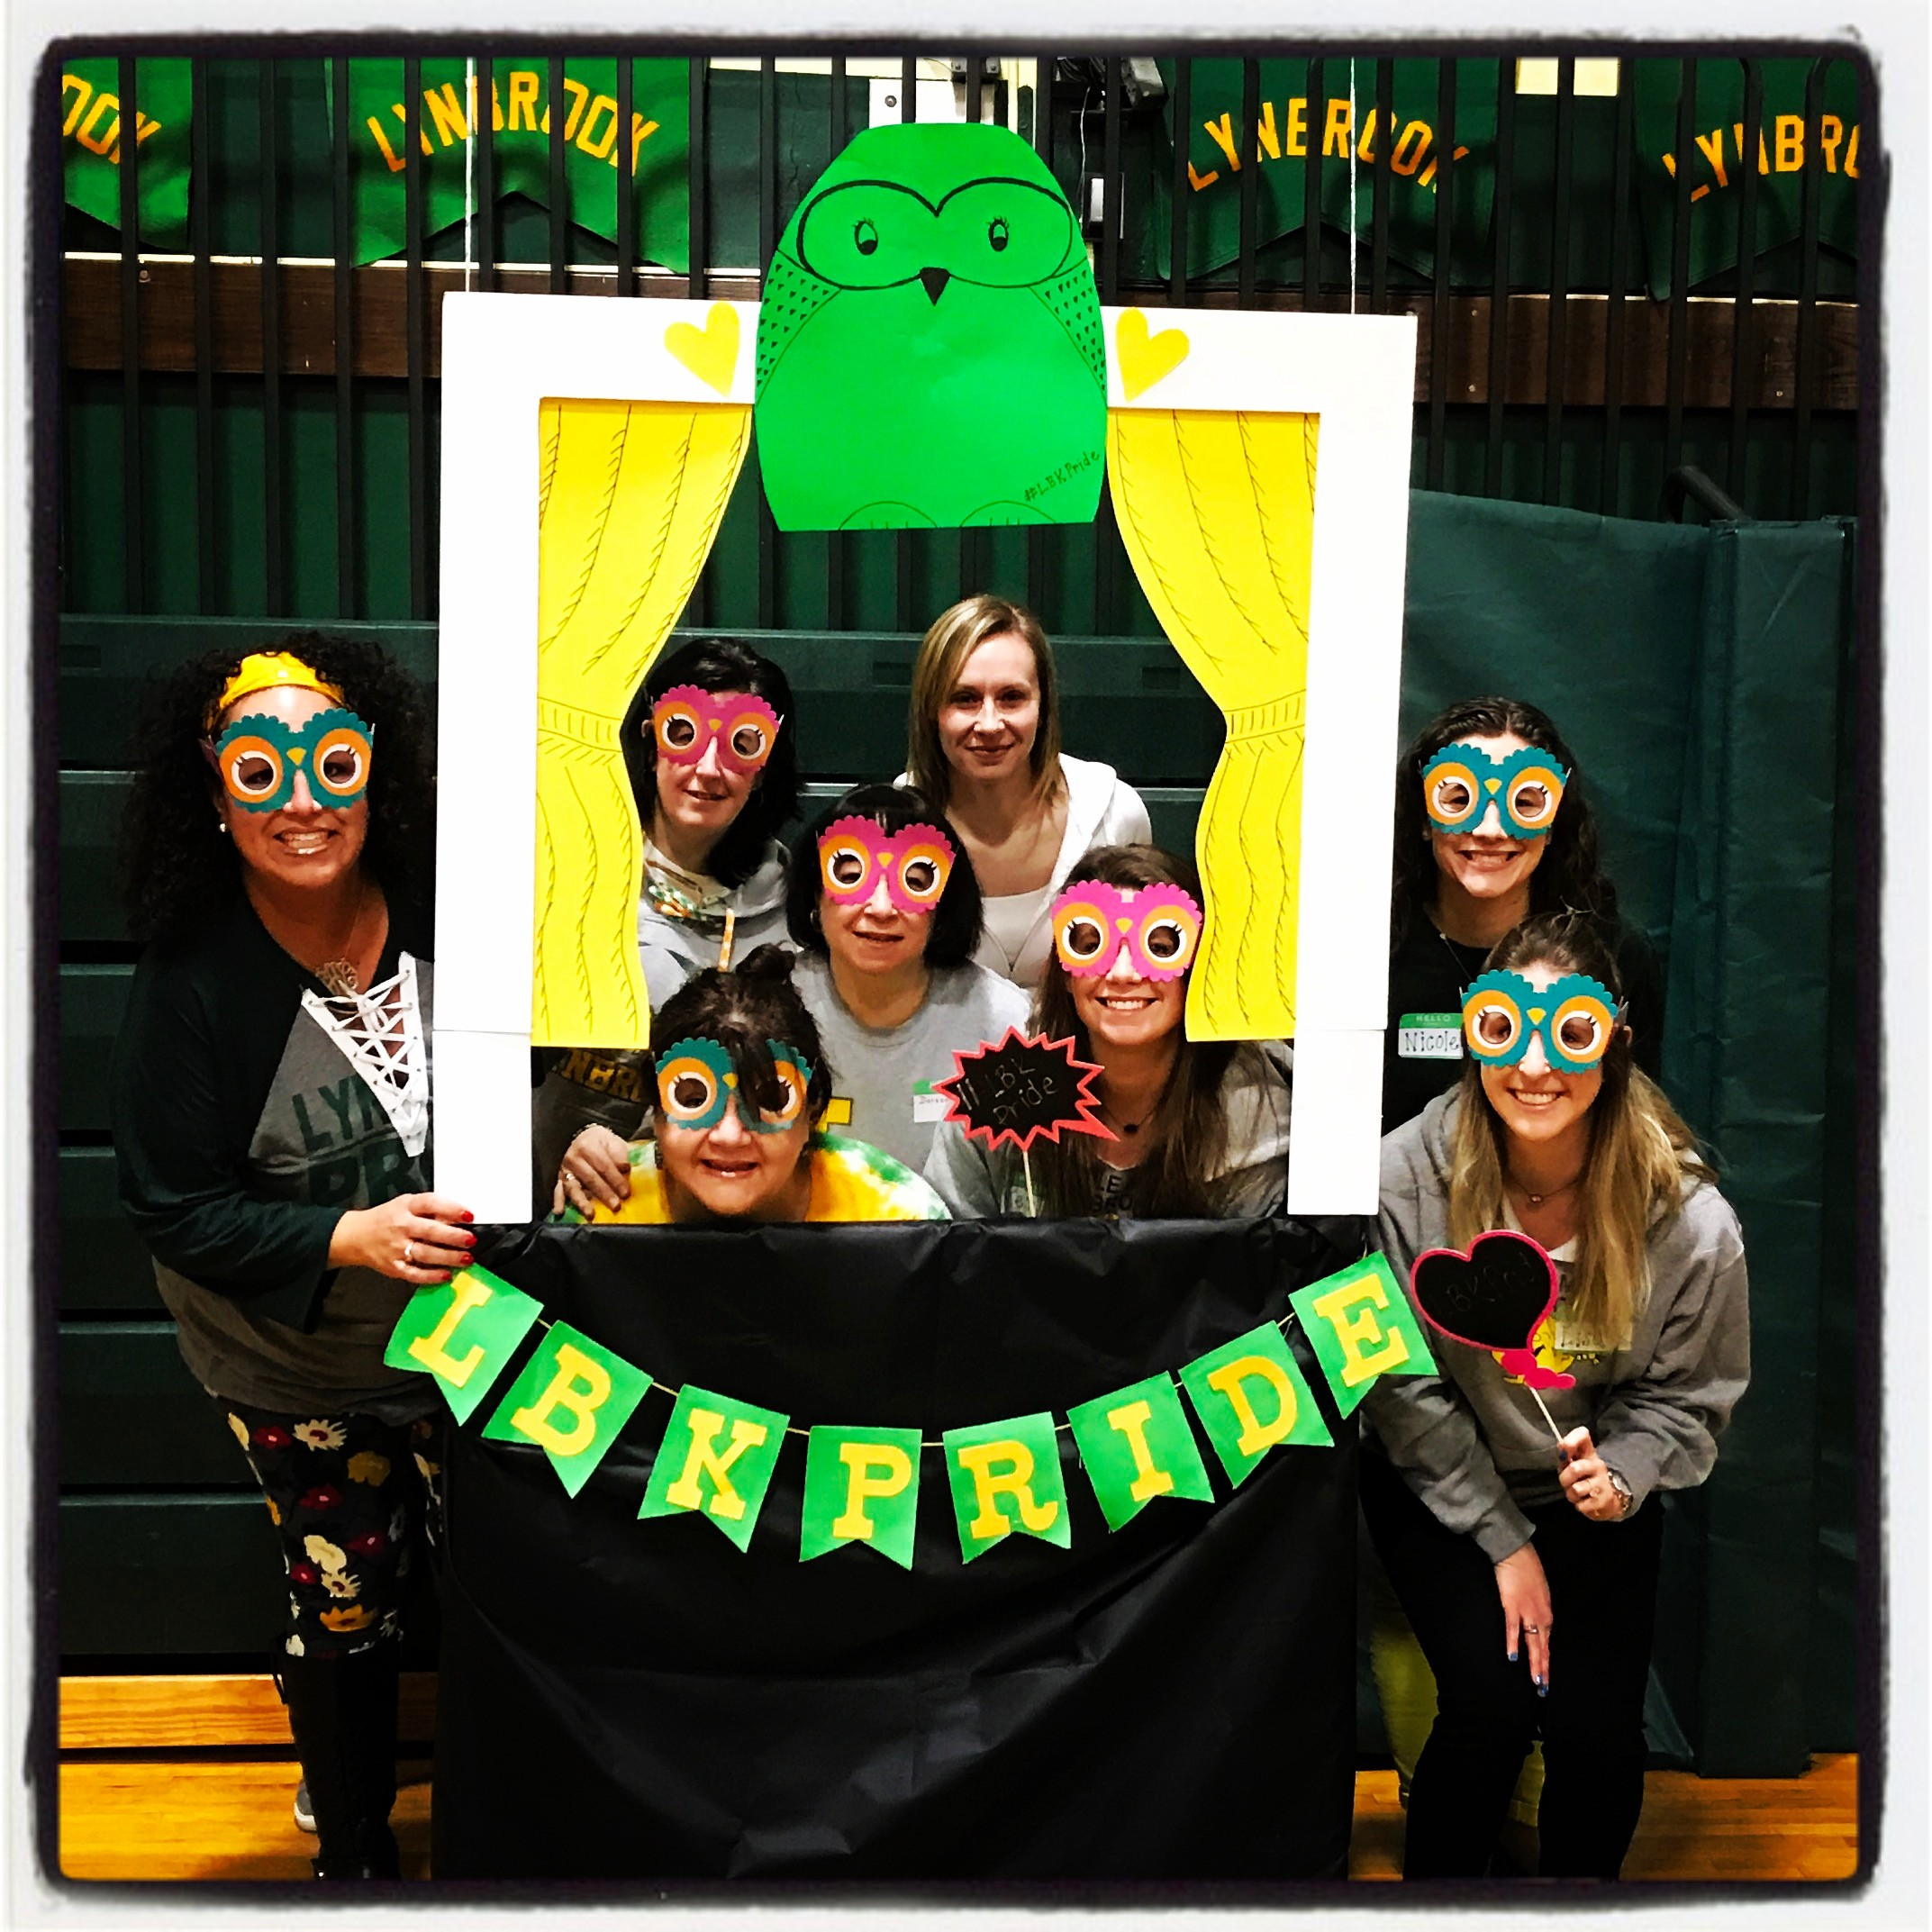 Teachers from Marion Street School showed their school pride by donning Owl eyes for photos at the seminar.